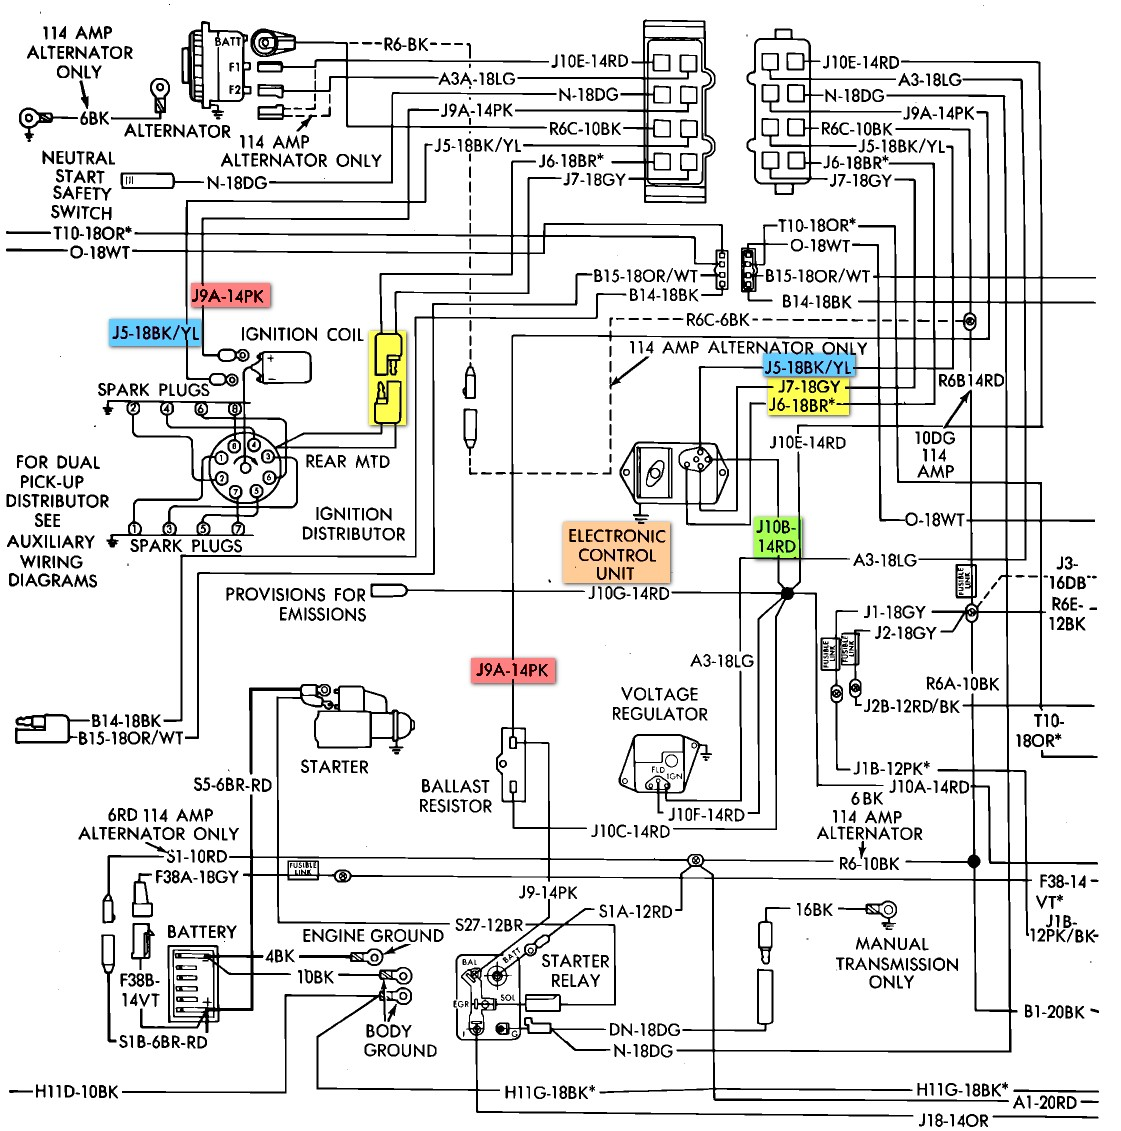 Gmc Motorhome Wiring Diagram | Wiring Diagram Basic on gmc motorhome wiring diagram, ford motorhome wiring diagram, dodge motorhome wiring diagram, monaco motorhome wiring diagram, chevy astro van wiring diagram, fleetwood bounder motorhome wiring diagram,